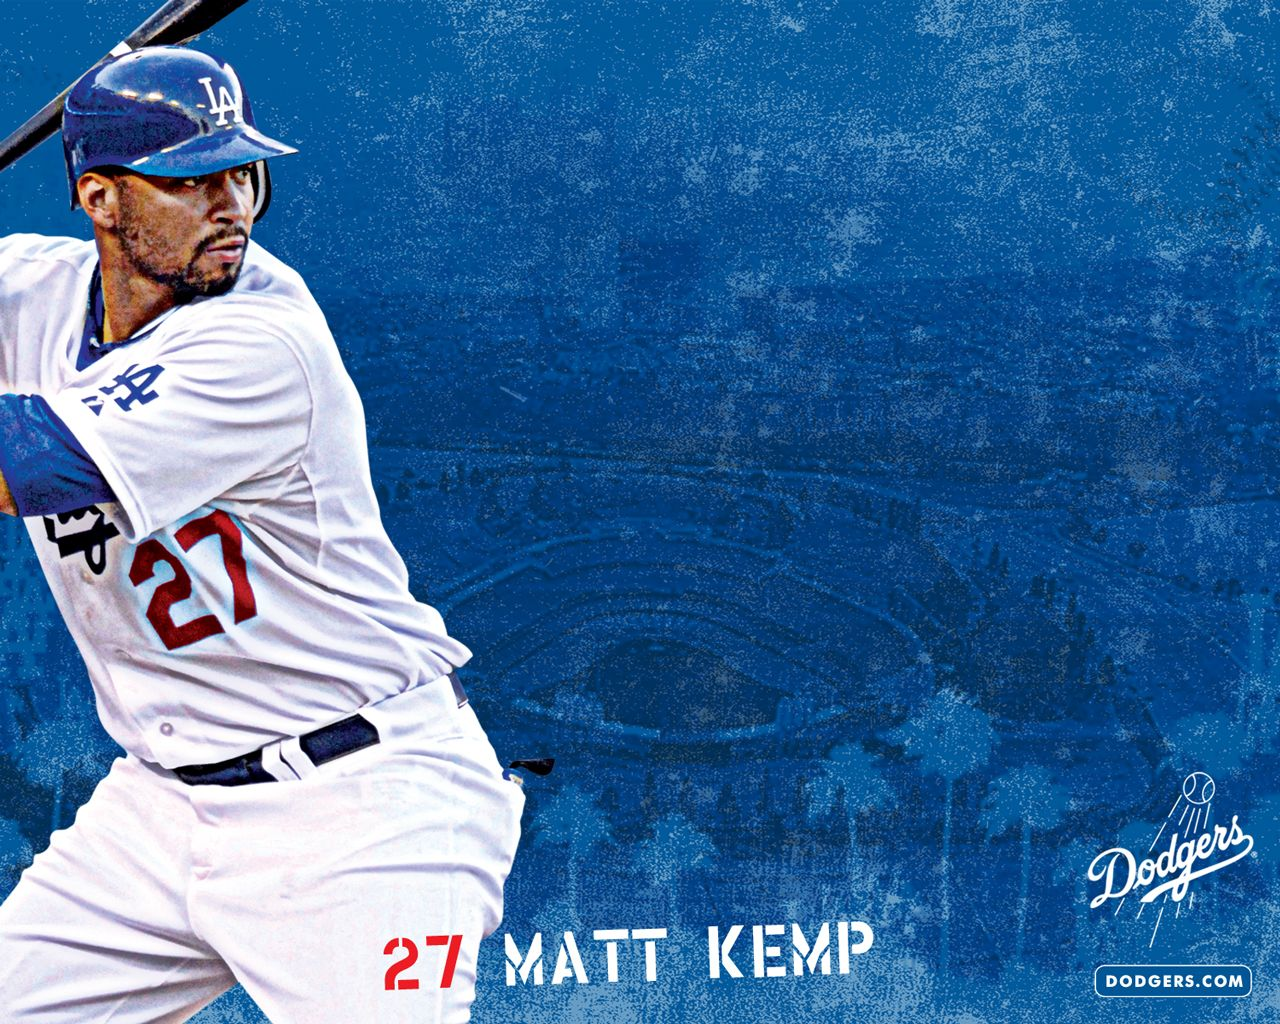 The Best Matt Kemp Dodgers Los Angeles Dodgers Baseball